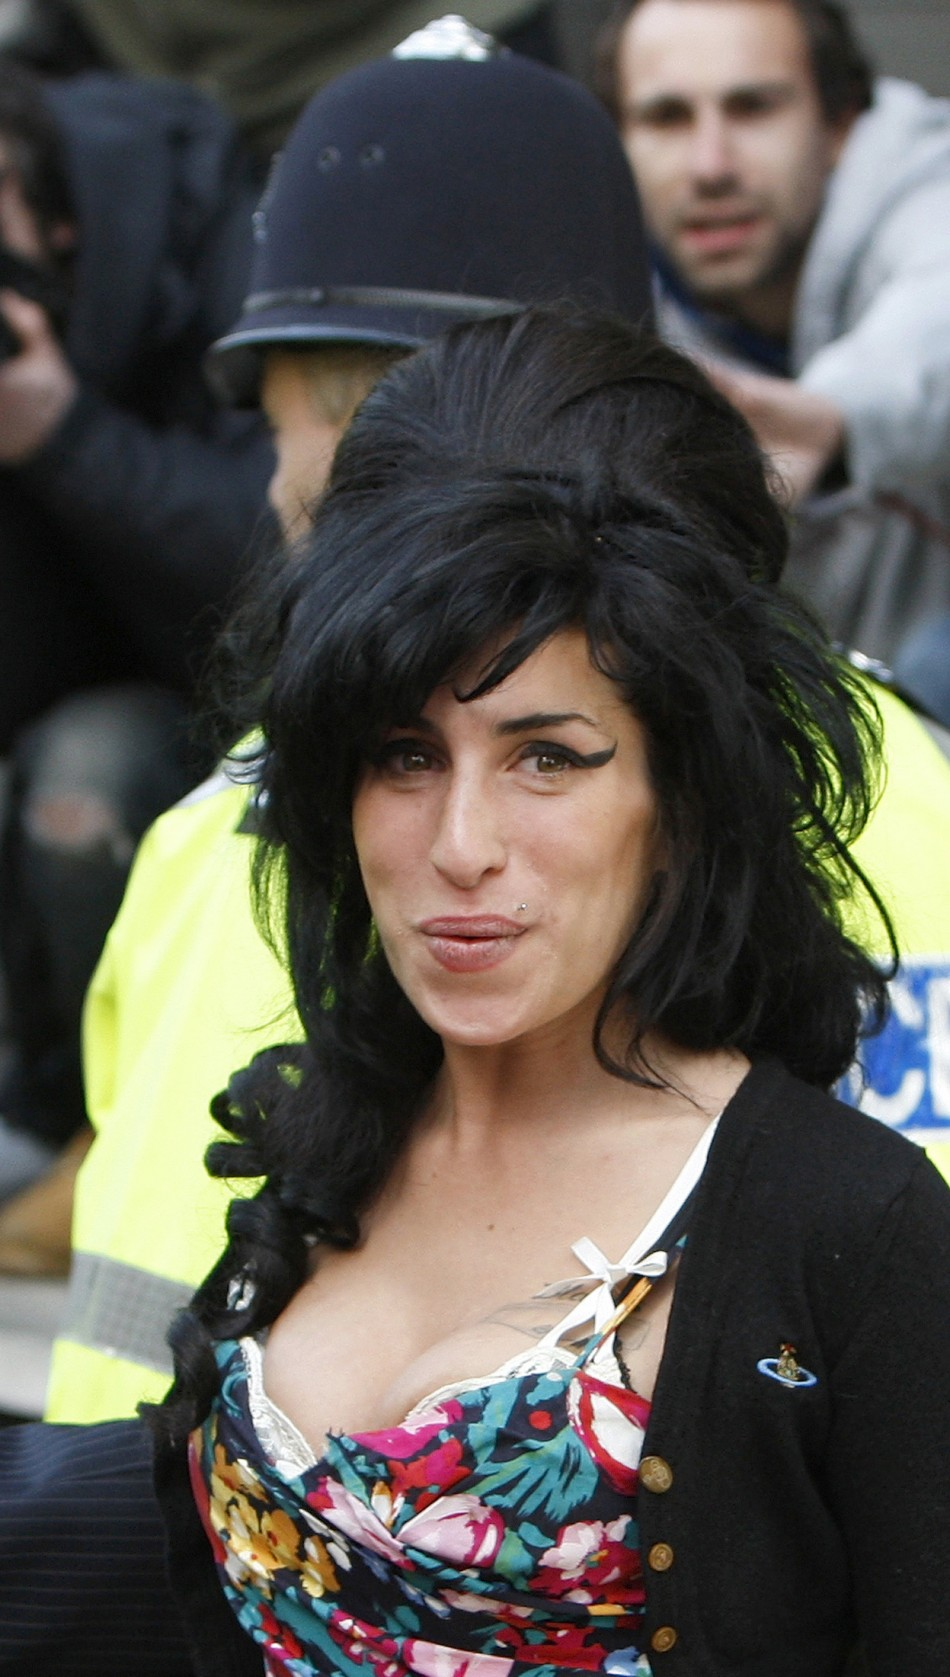 British singer Amy Winehouse